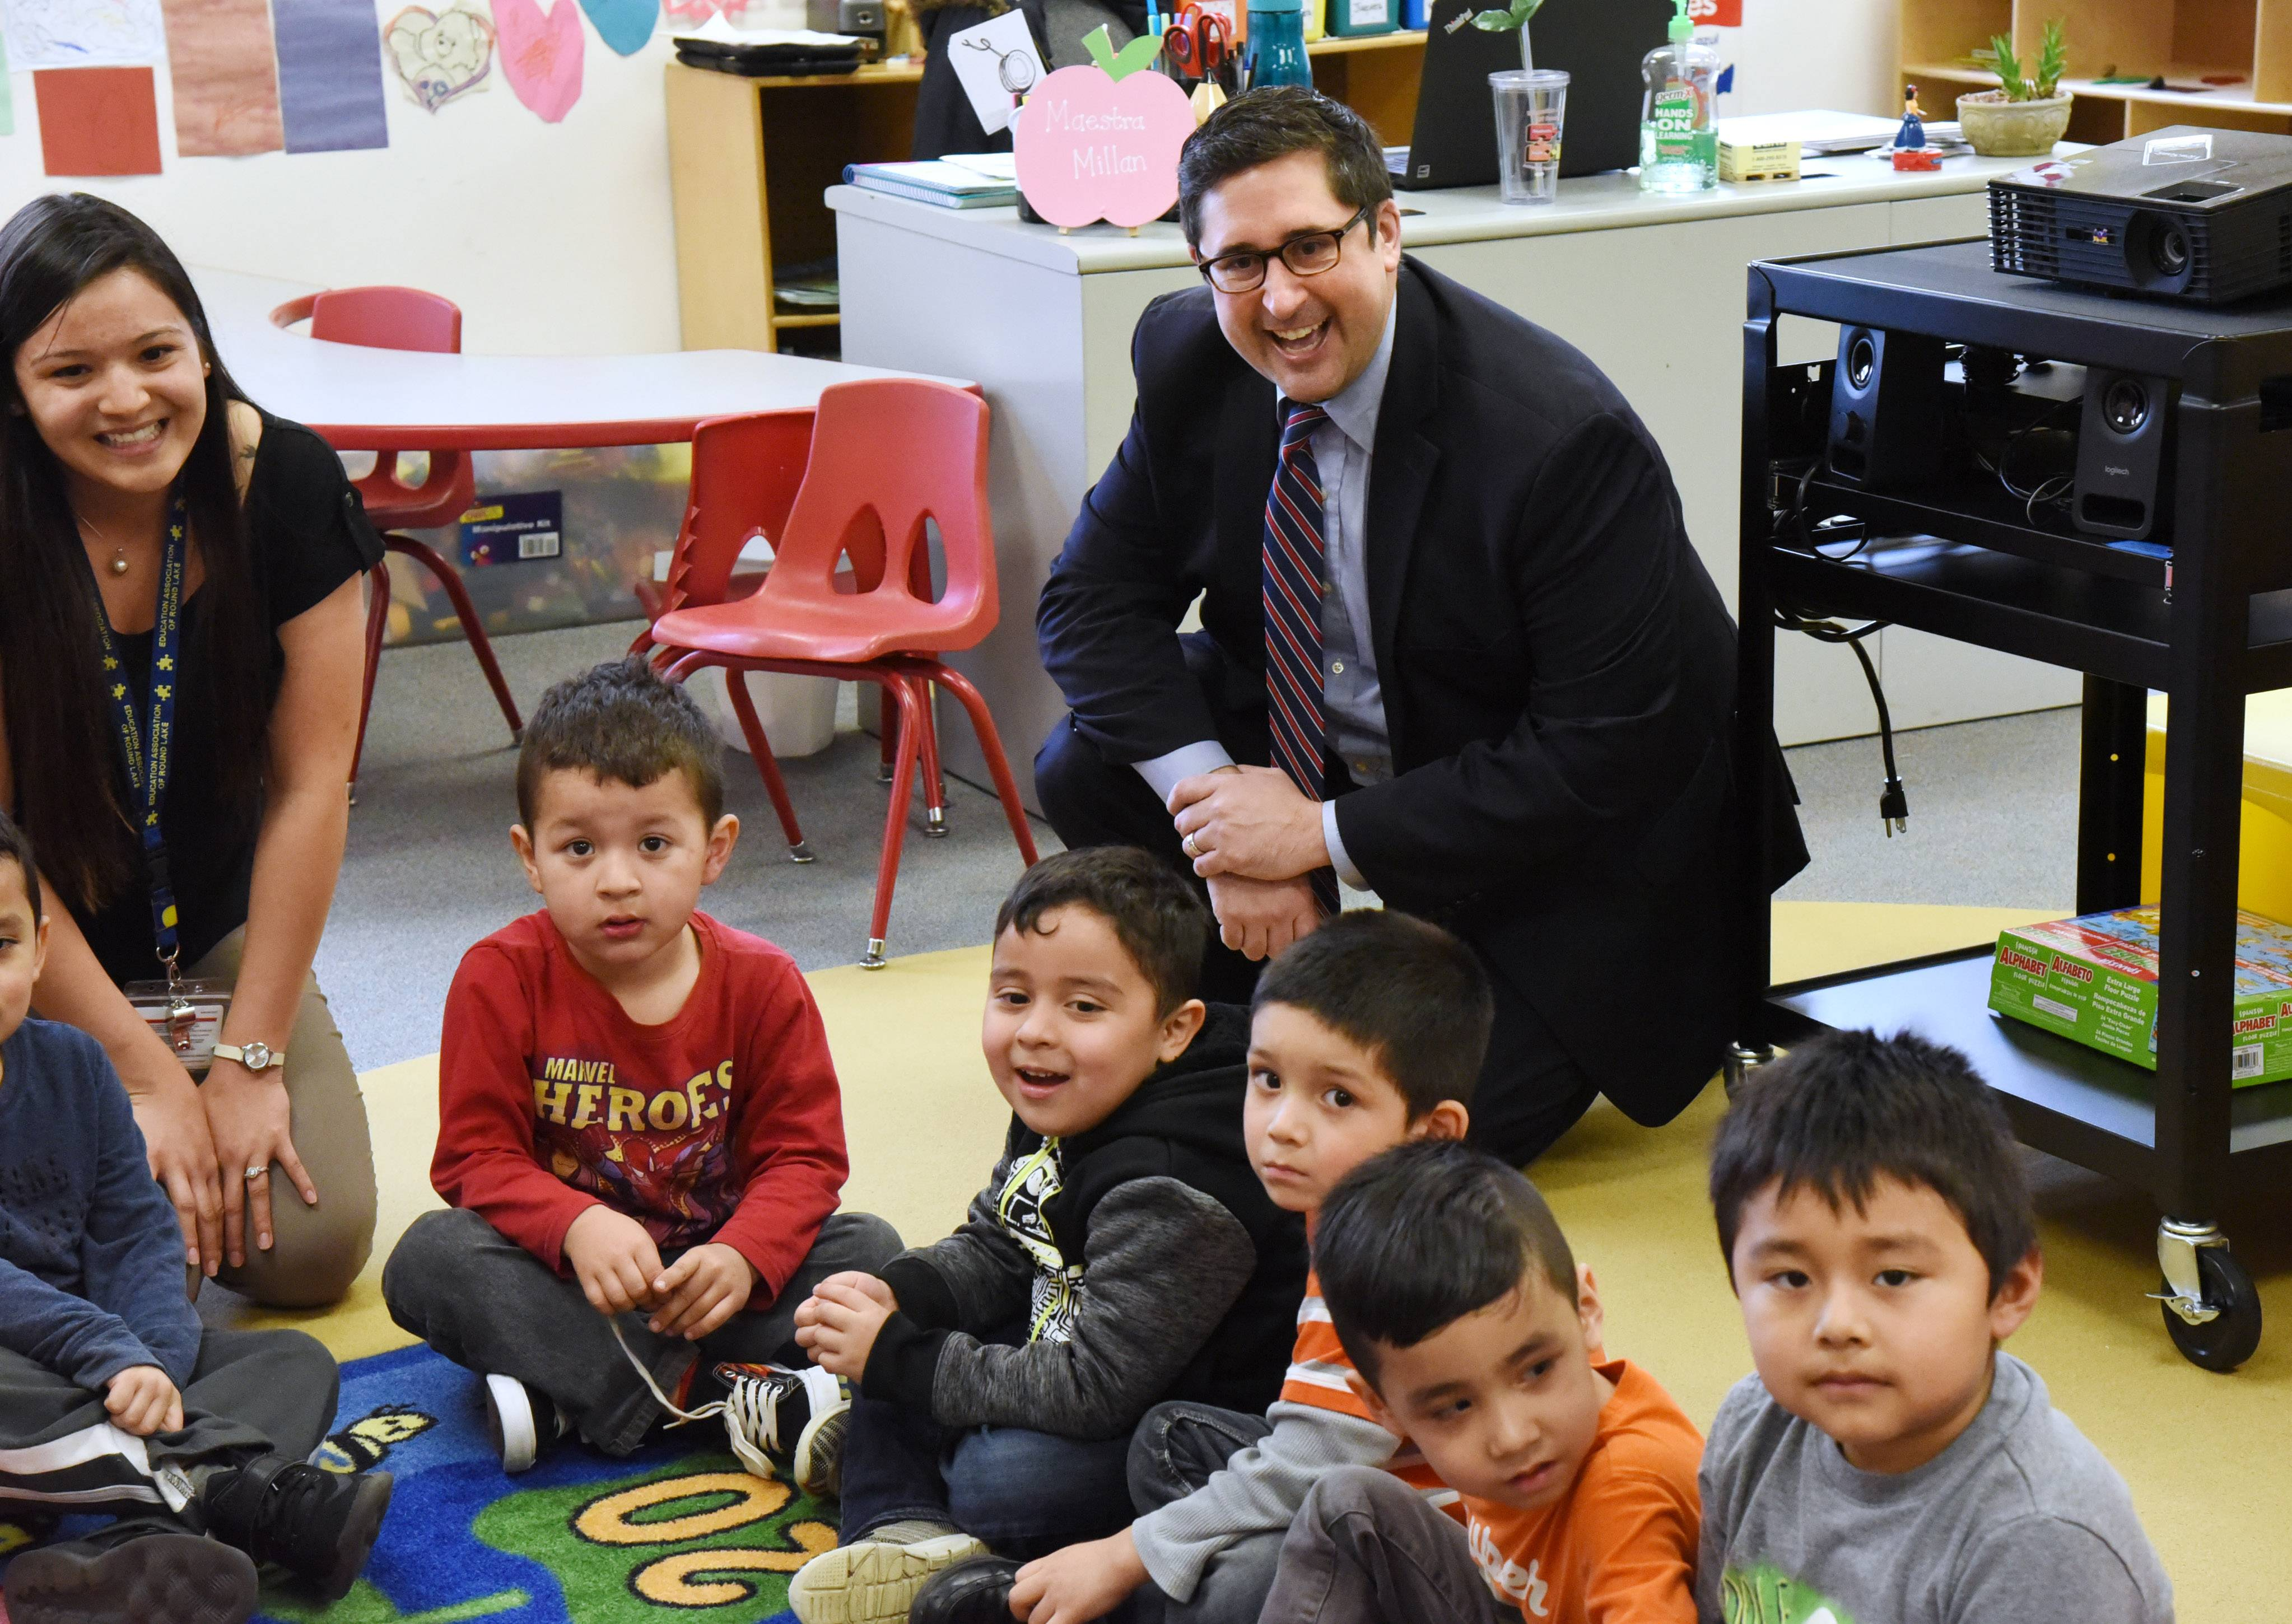 State Rep. Sam Yingling, a Grayslake Democrat, visits a bilingual class taught by Yuri Millan, left, during a stop at the Round Lake Early Education Center on Tuesday.